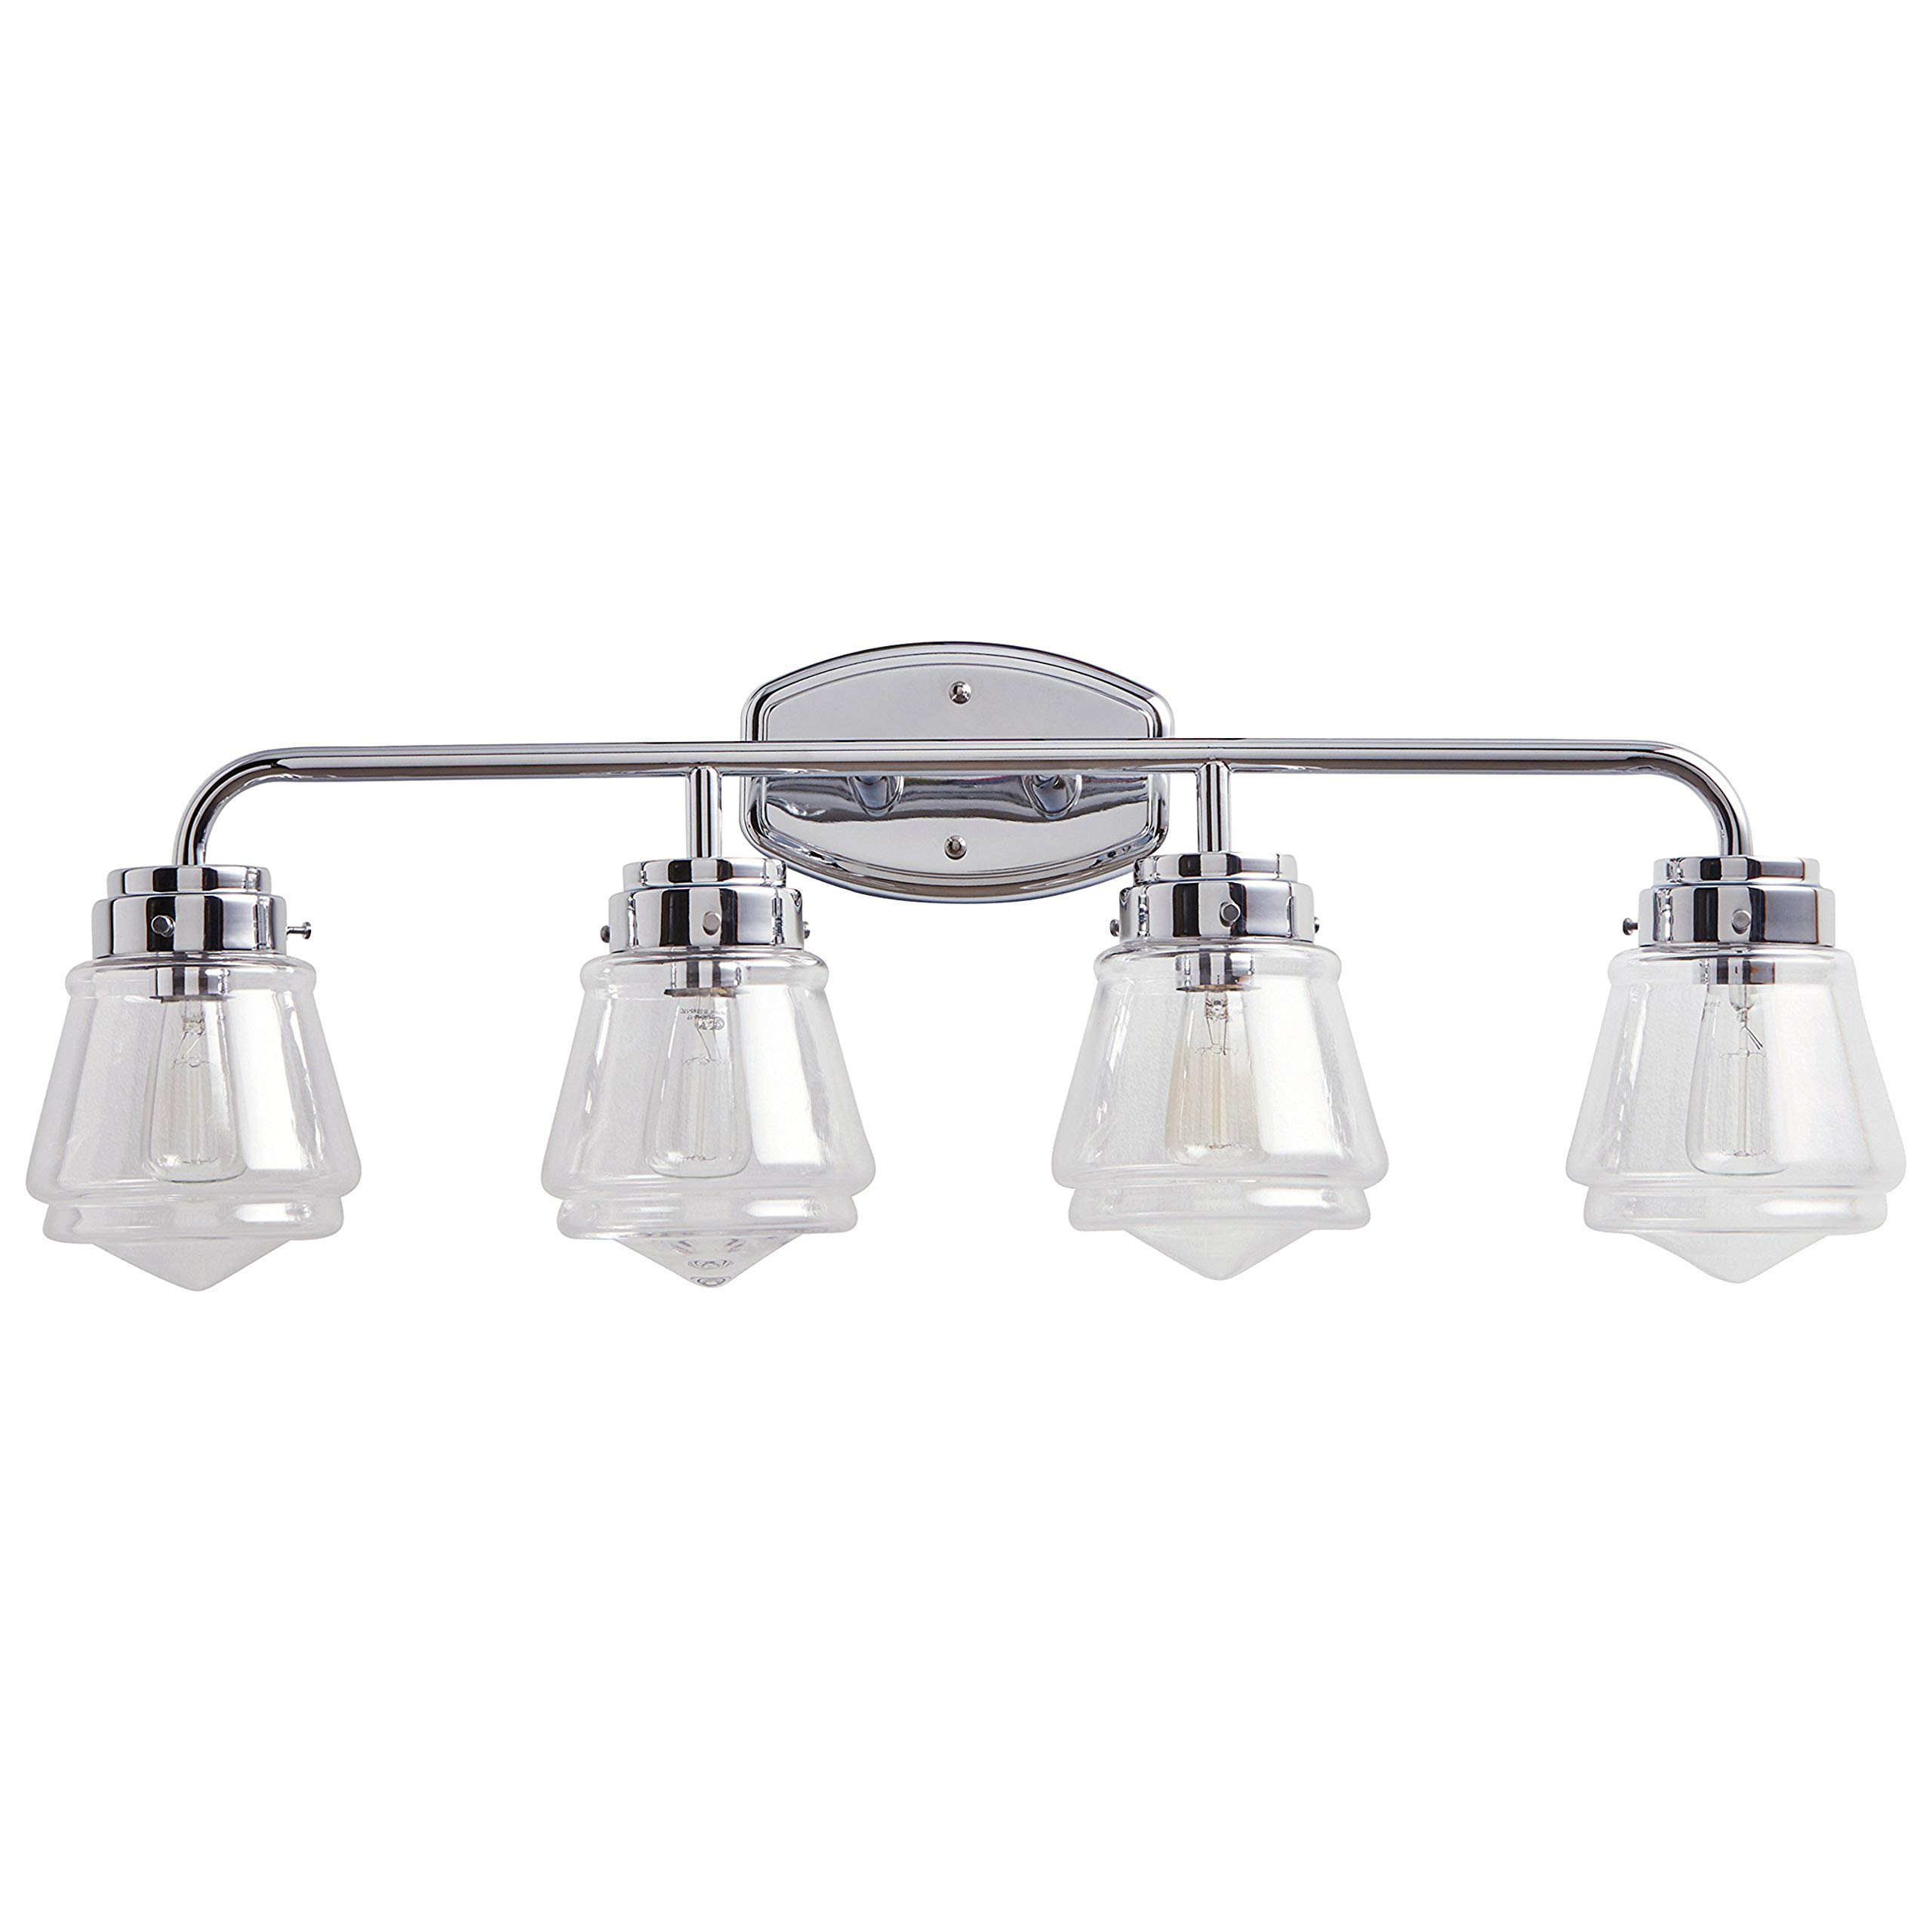 Stone & Beam Vintage 4-Light Vanity Fixture, 11.5''H, With Bulb, Chrome with Glass Shade